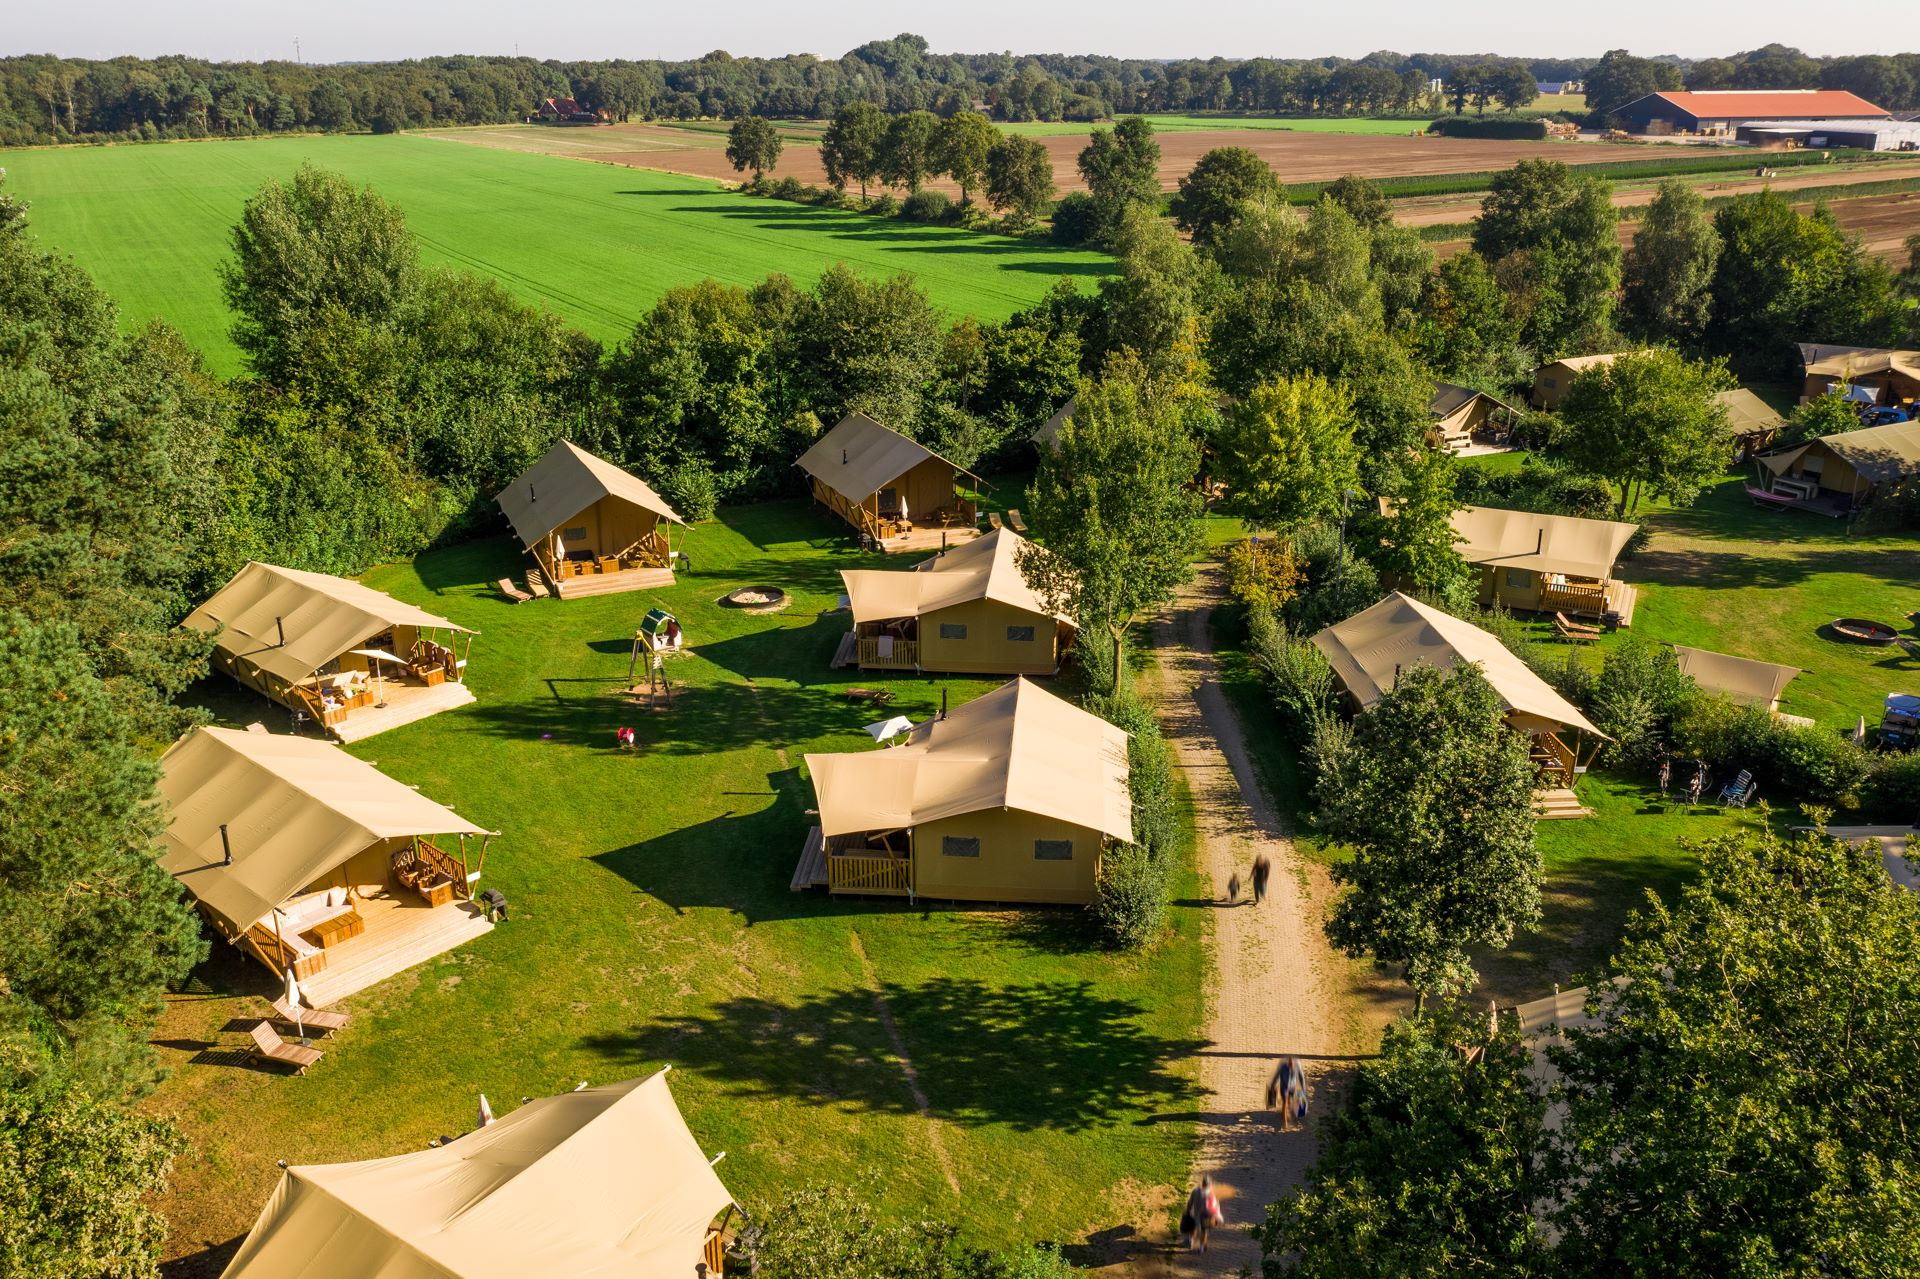 Vacanze col Cuore welcomes Dutch tourist in their own country | New Glamping